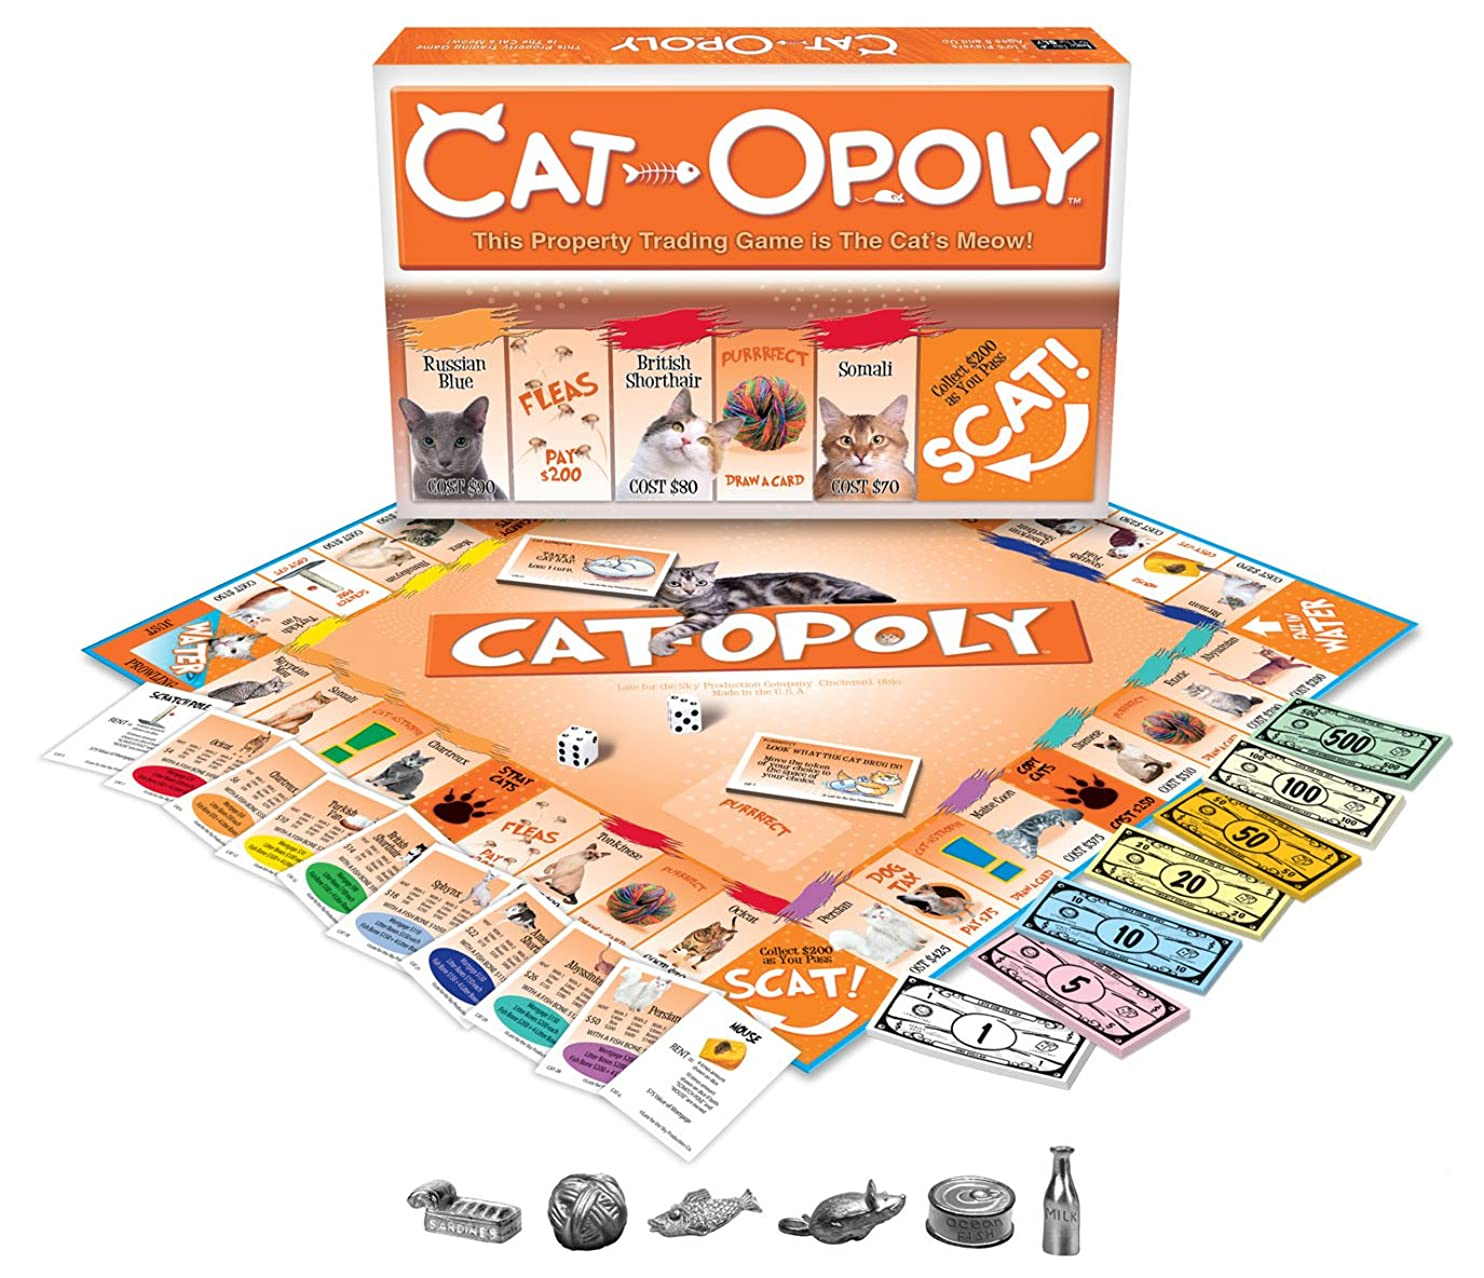 Late for the Sky Cat-Opoly kzzaiplmciy38